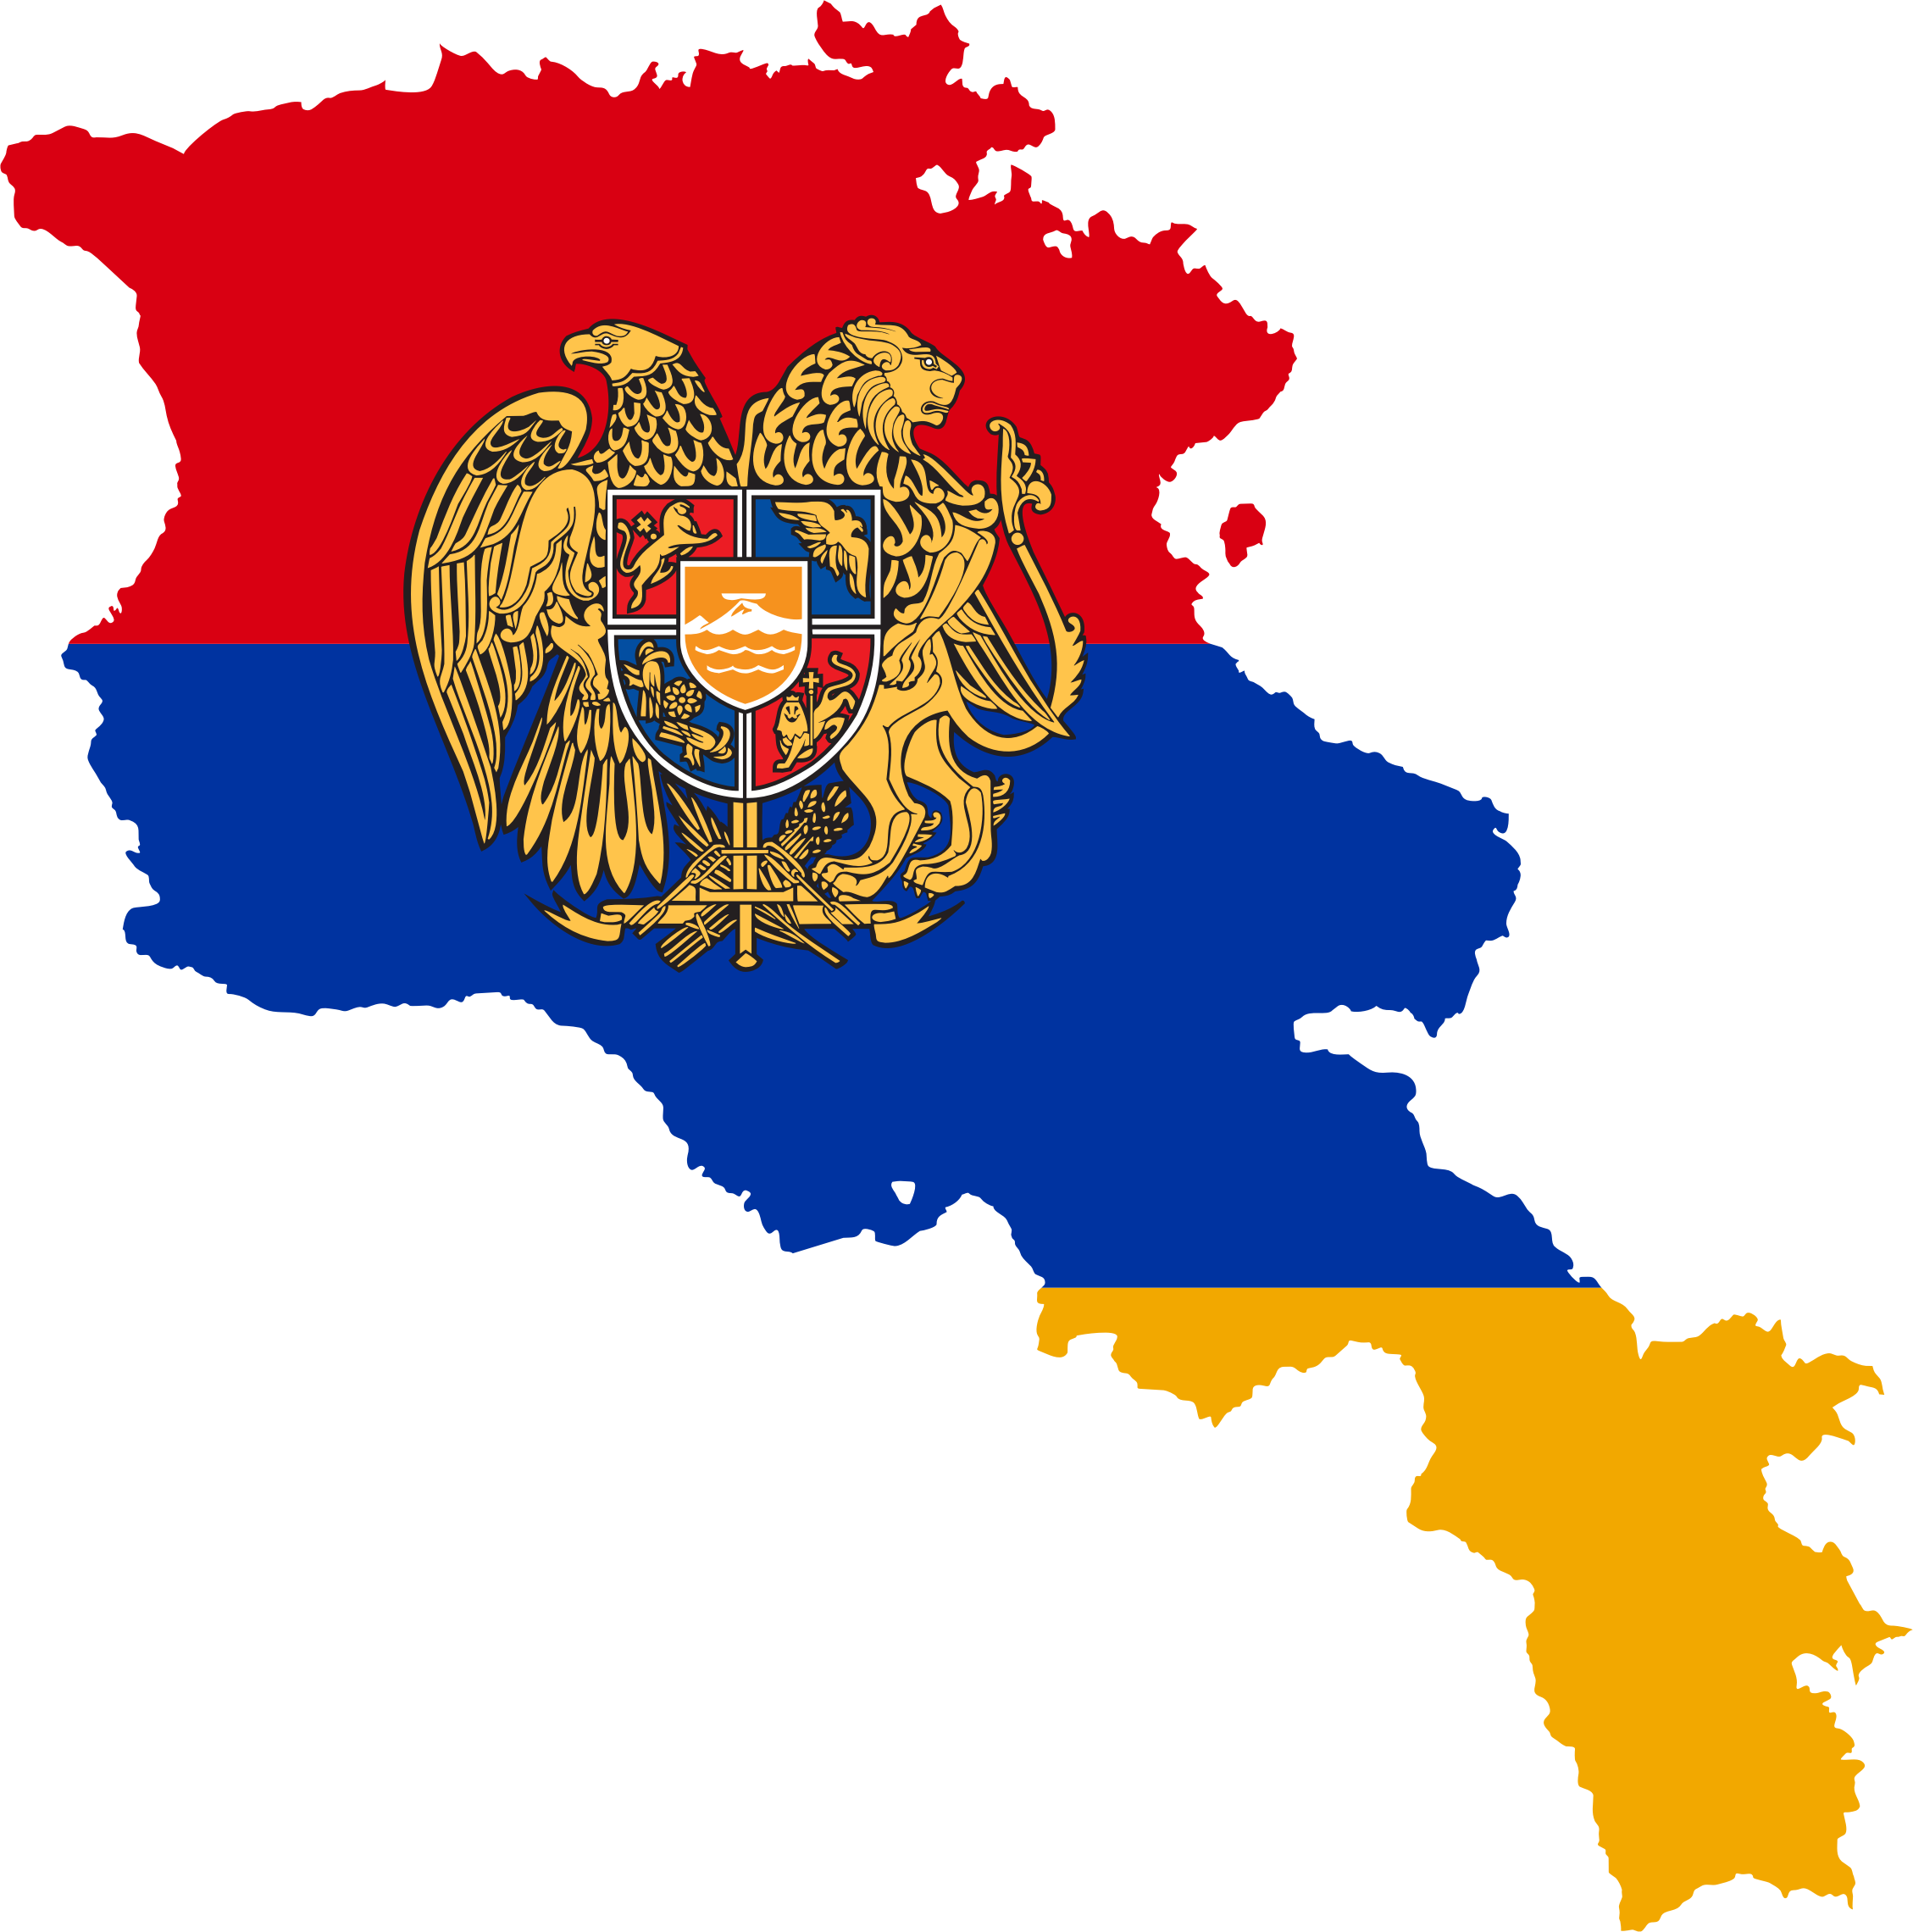 Armenia Map Flag With Coat Of Arms by GDJ